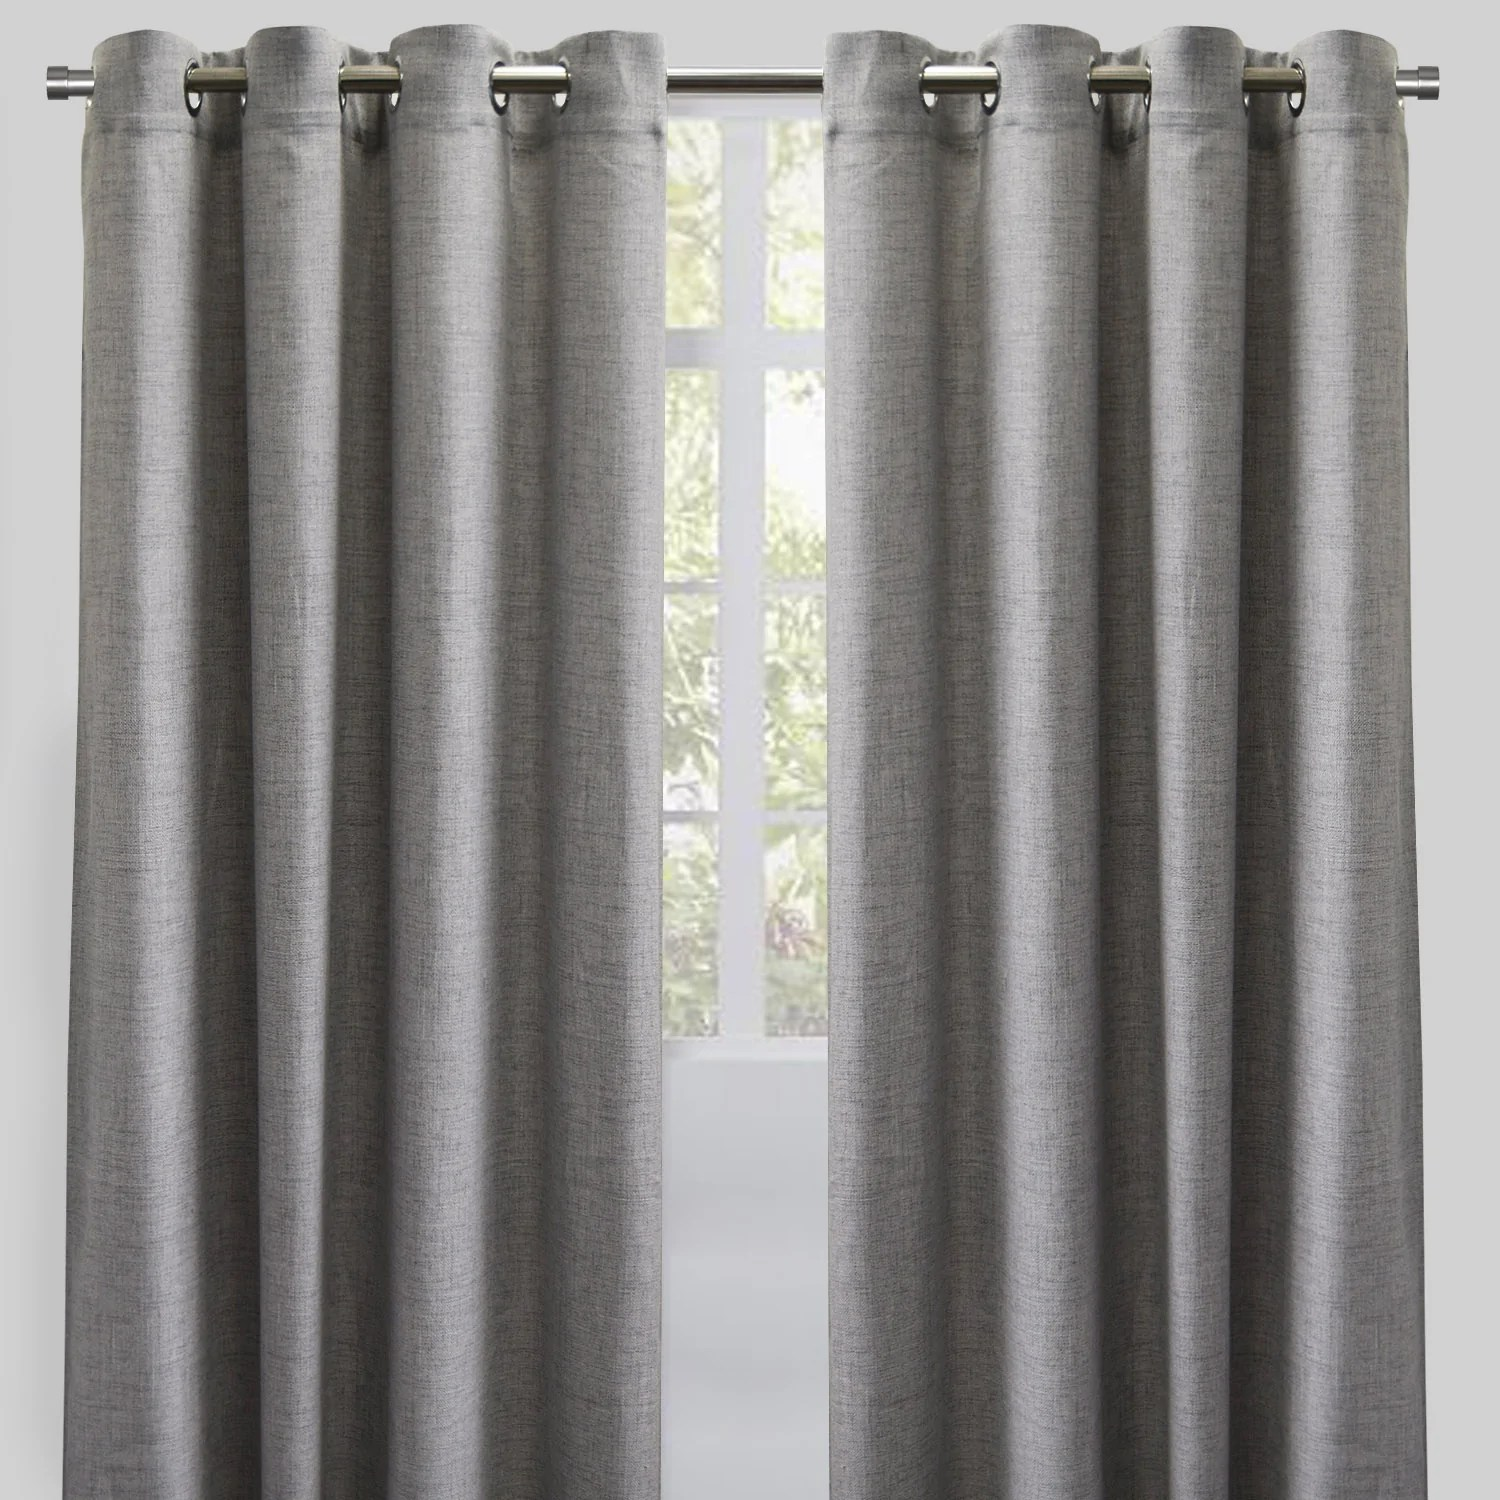 halsey set of 2 linen look curtain panels size 54x96 color silver